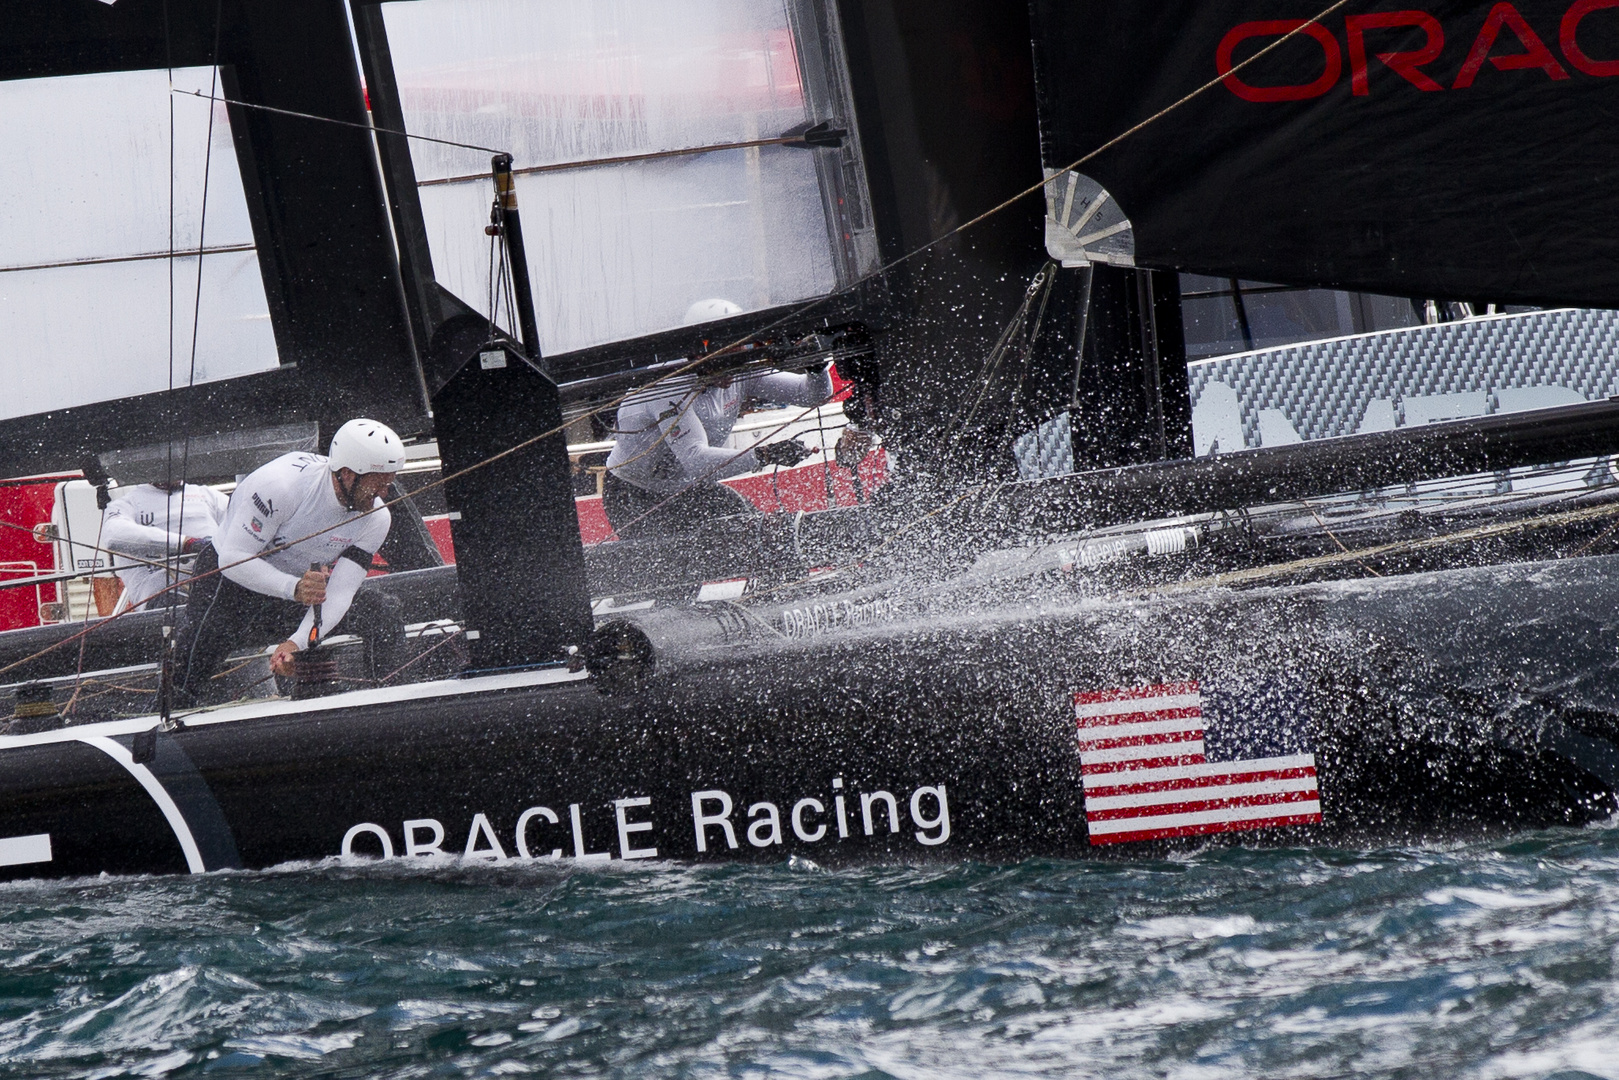 Team Oracle Coutts (USA) - Harte Arbeit!